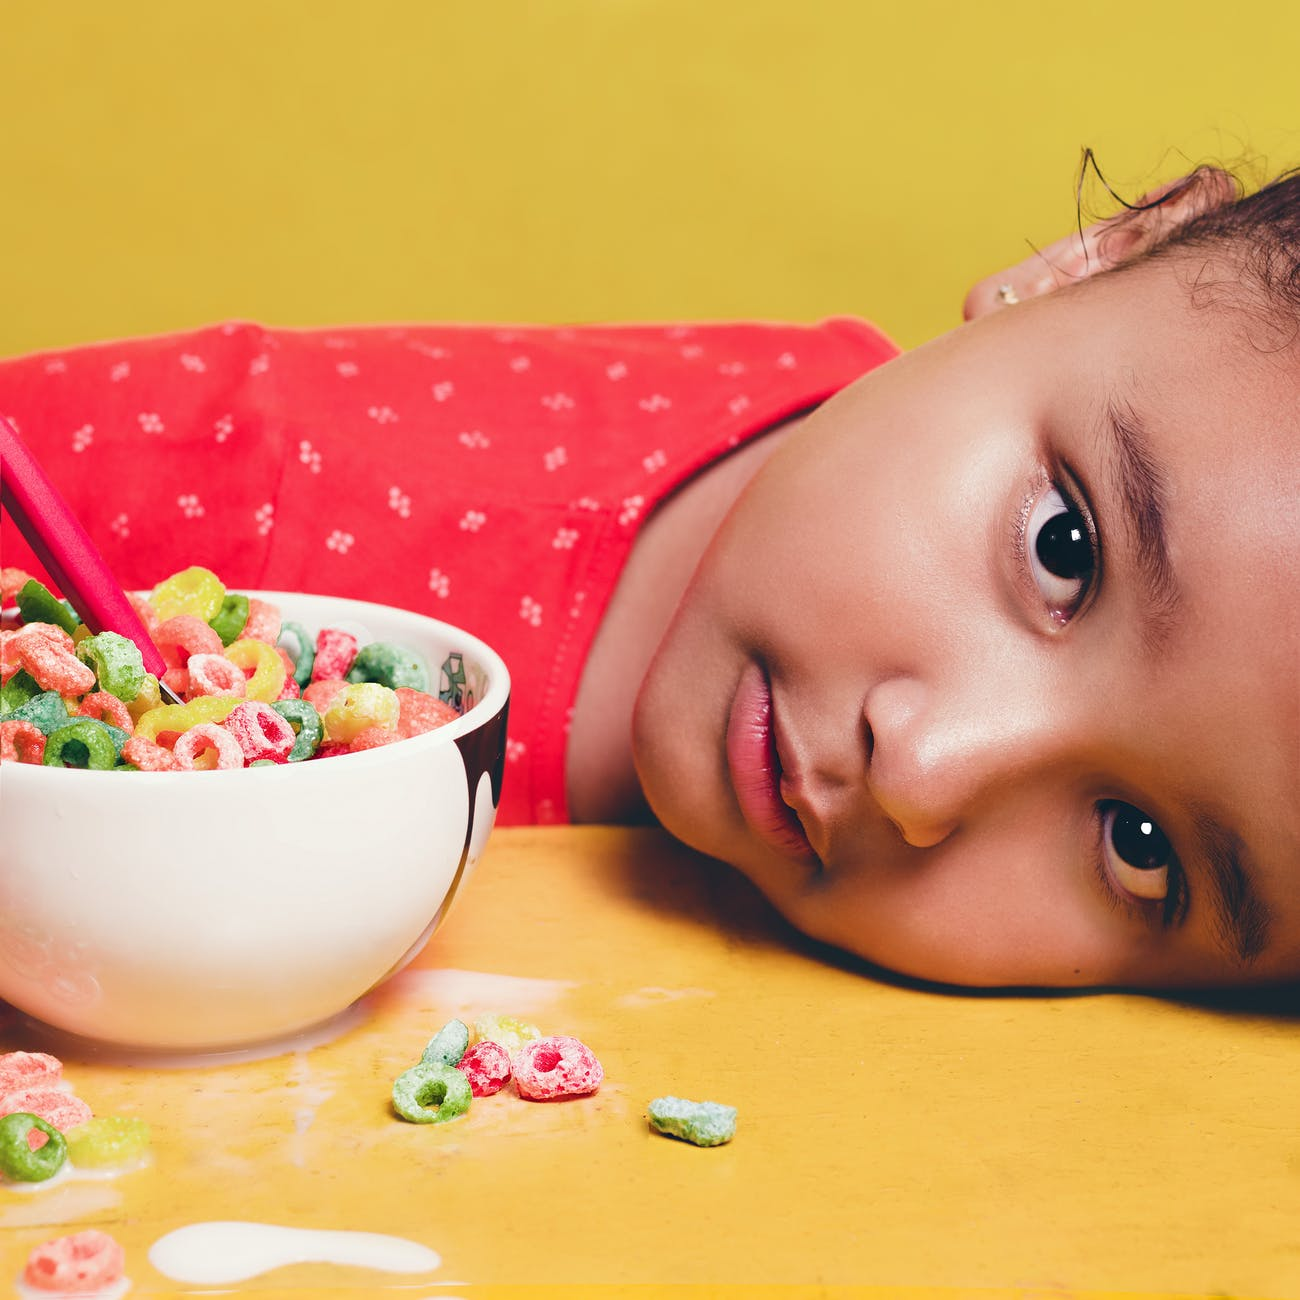 Appetite of child. How much food my child needs? Parents worry everyday when they server children food to their child. it is a constant issue